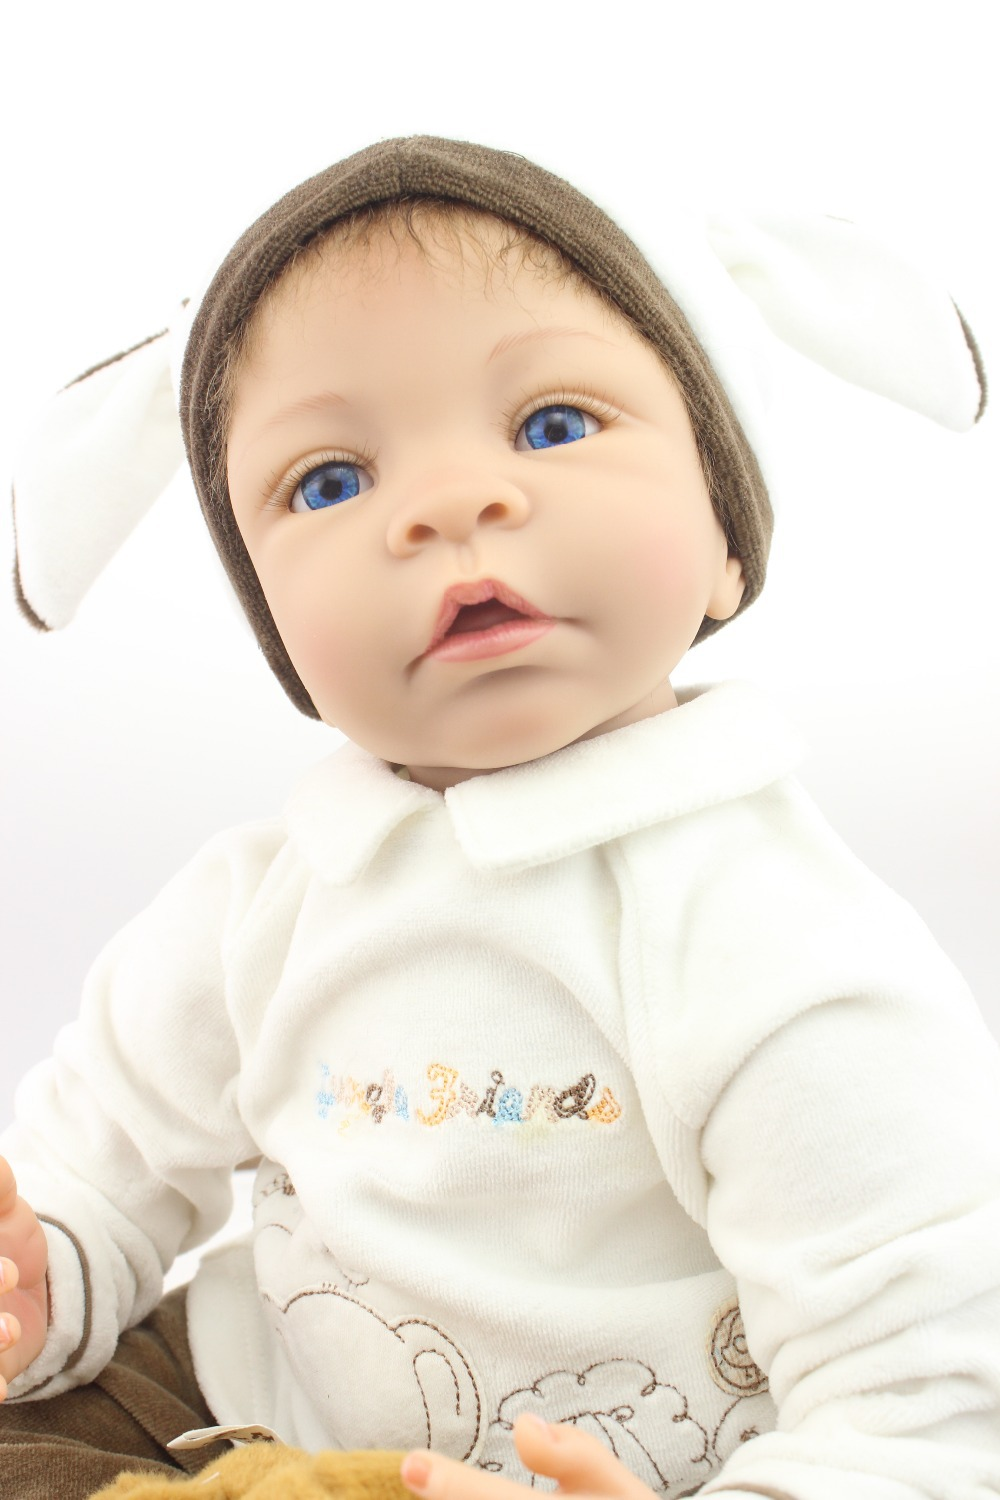 Lifelike reborn baby doll baby dolls fashion doll Christmas gift hot selling one new design model short curl hair lifelike reborn toddler dolls with 20inch baby doll clothes hot welcome lifelike baby dolls for children as gift